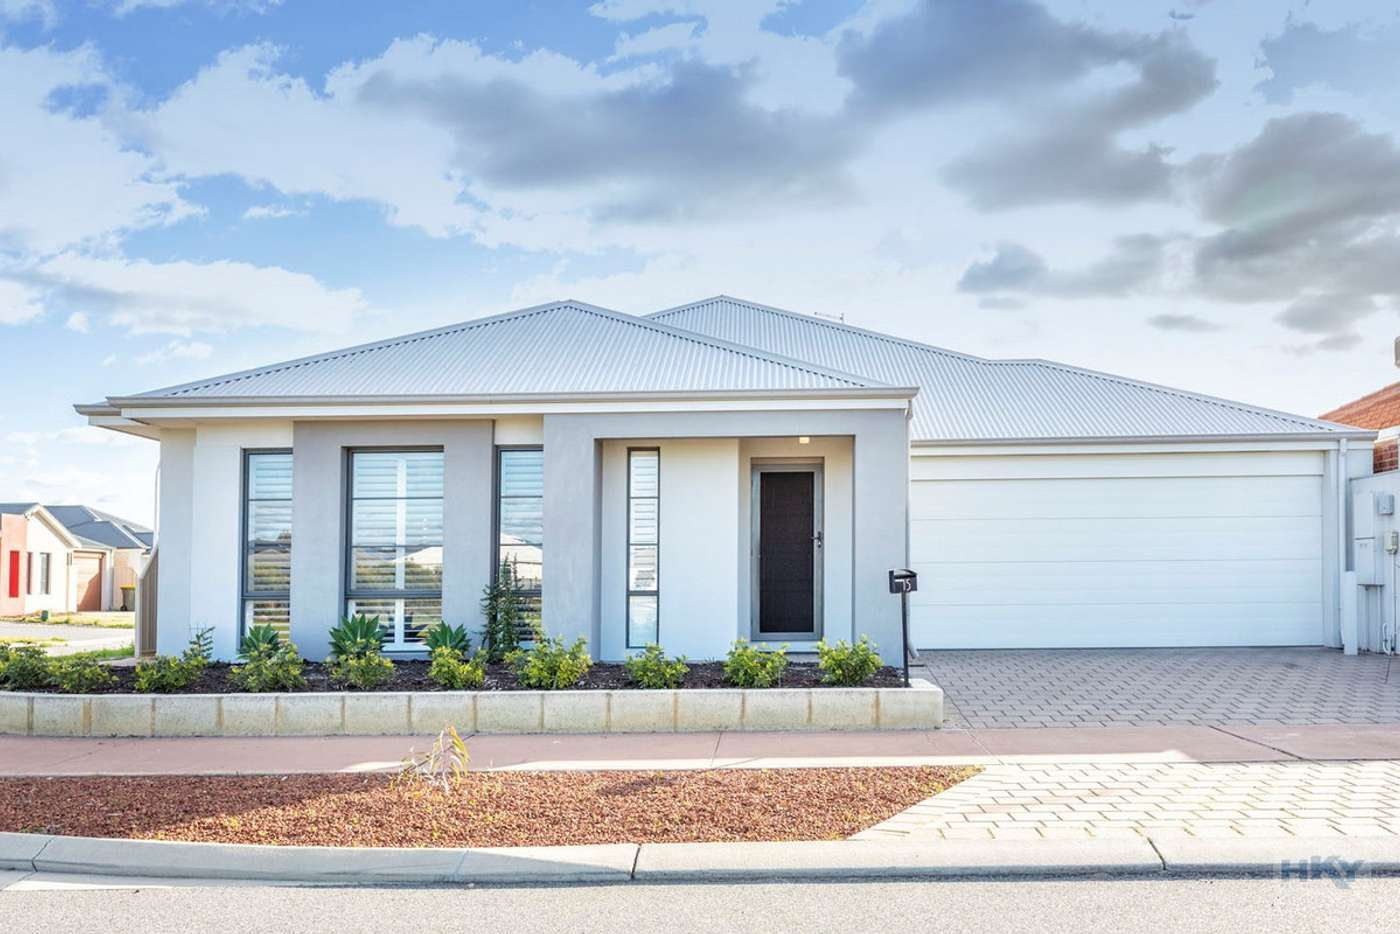 Main view of Homely house listing, 15 Callet Drive, Caversham WA 6055